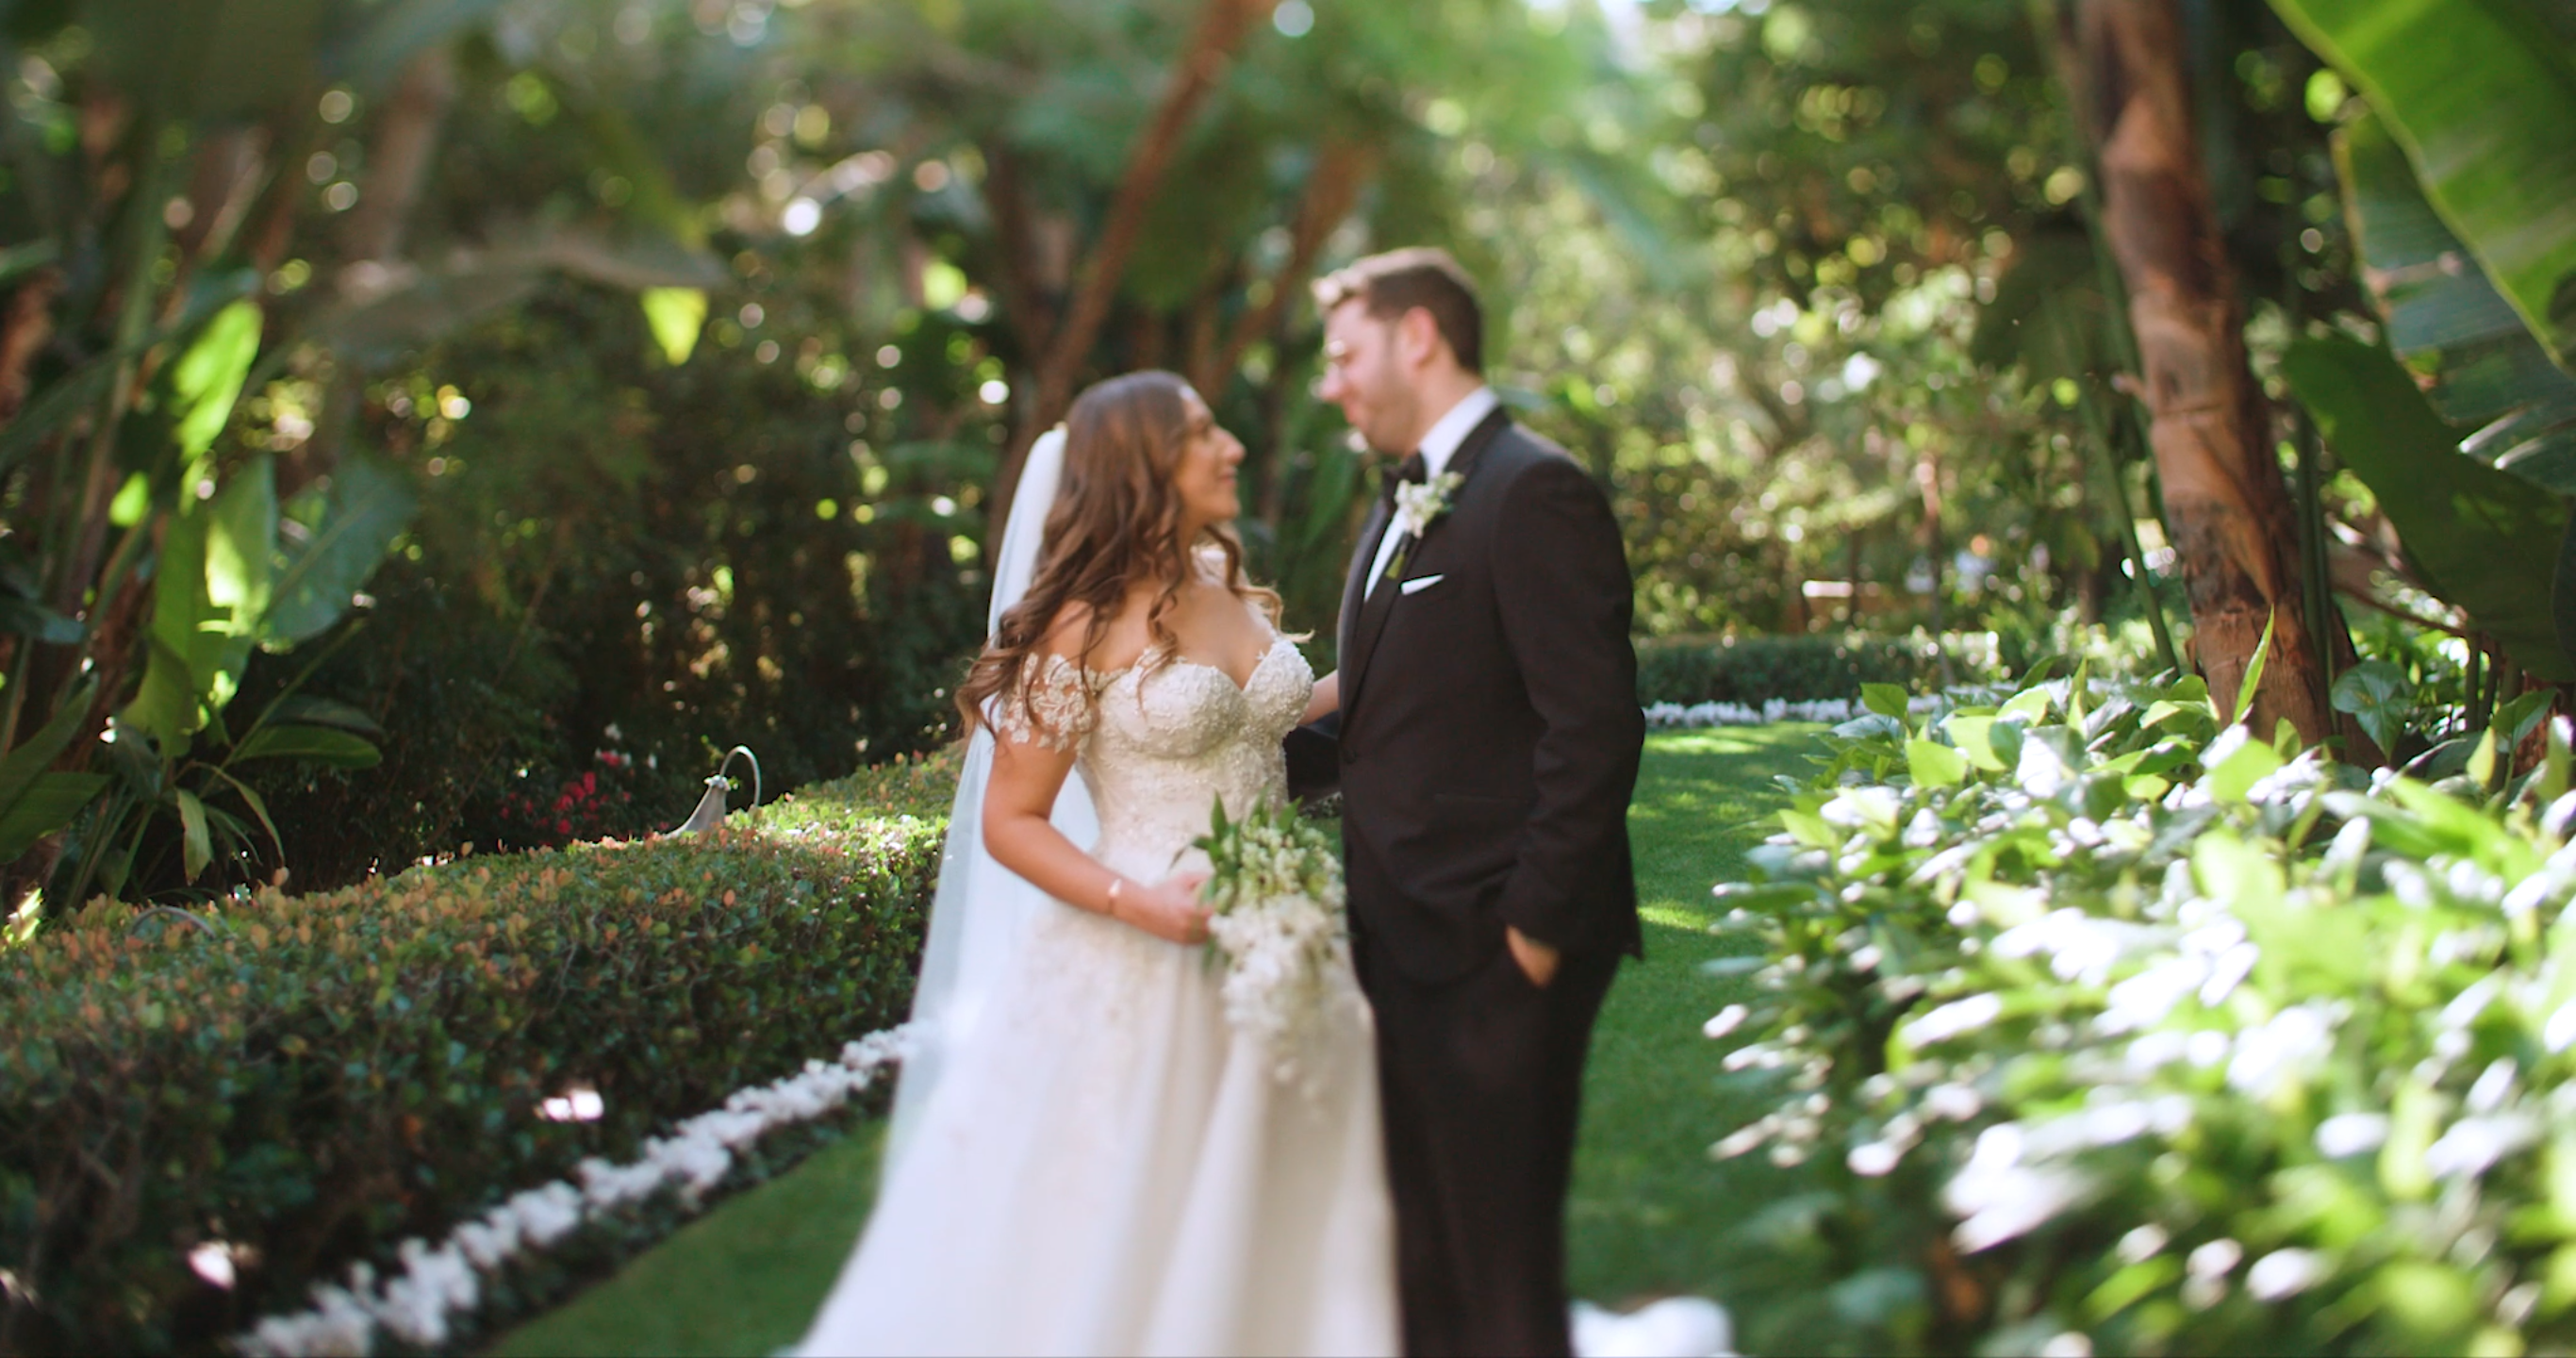 Jorey + Alex | Beverly Hills, California | Beverly Hills Hotel